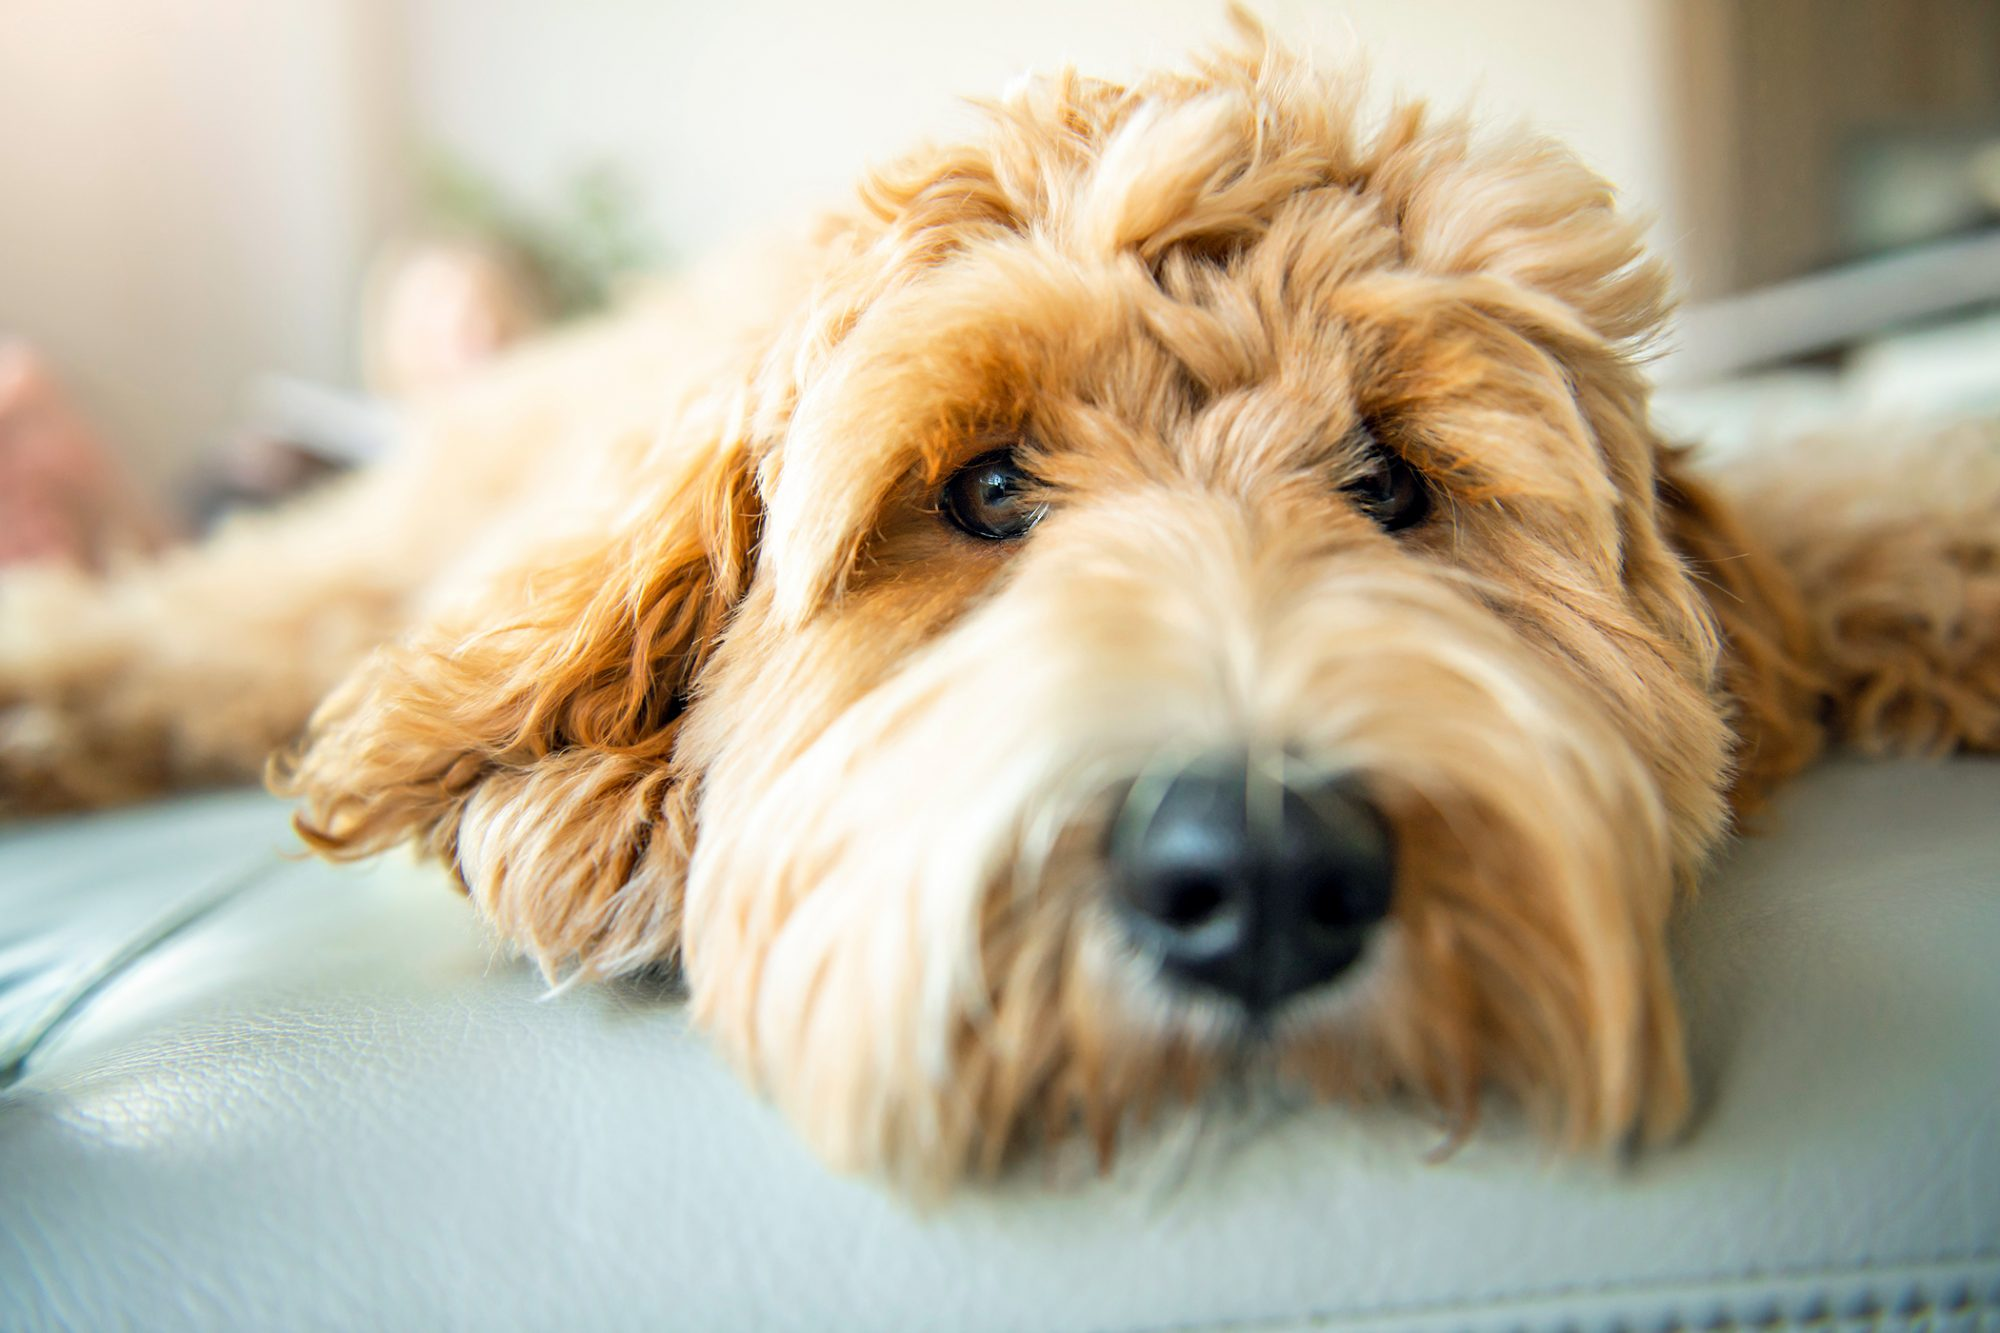 close up of Goldendoodle's face